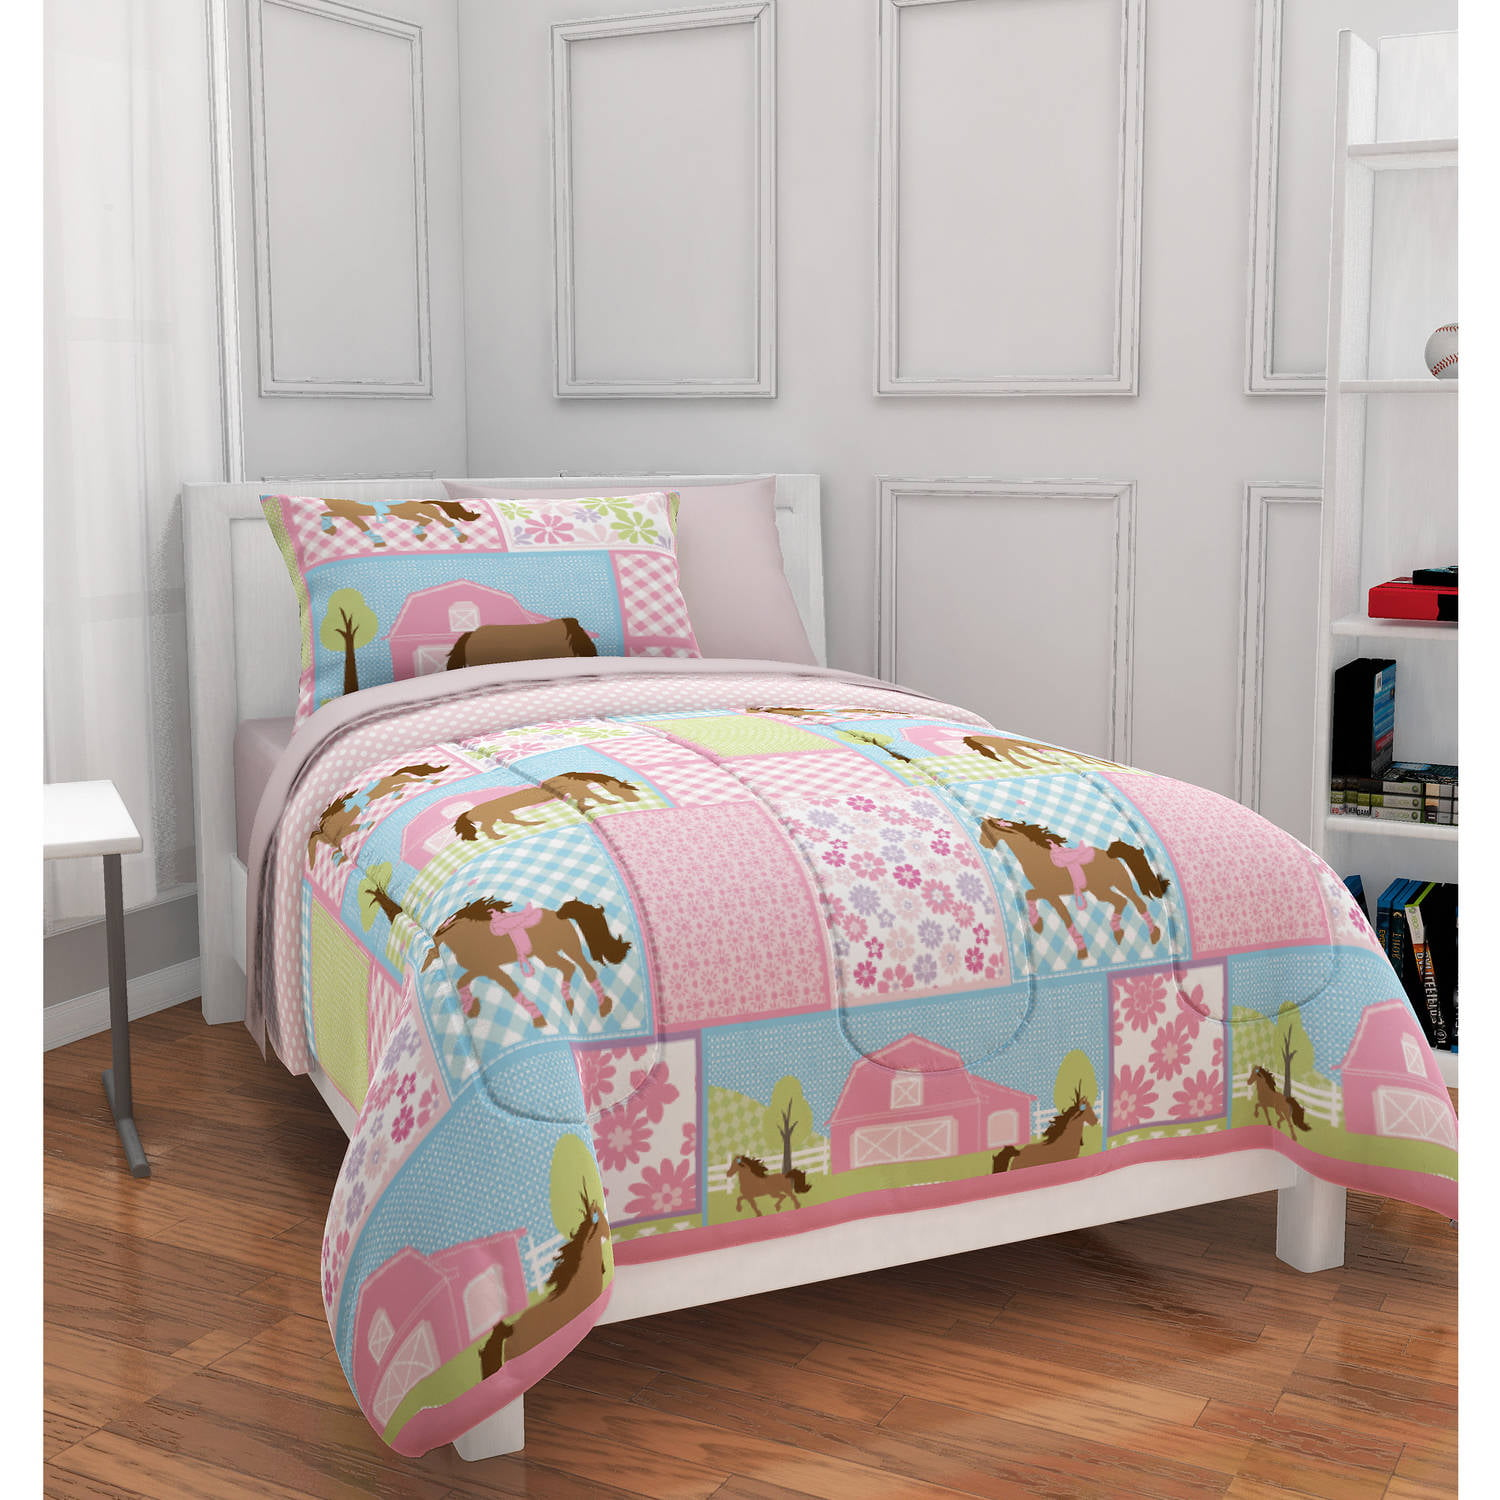 mainstays kids country meadows bed in a bag bedding set bedding sets twin kids